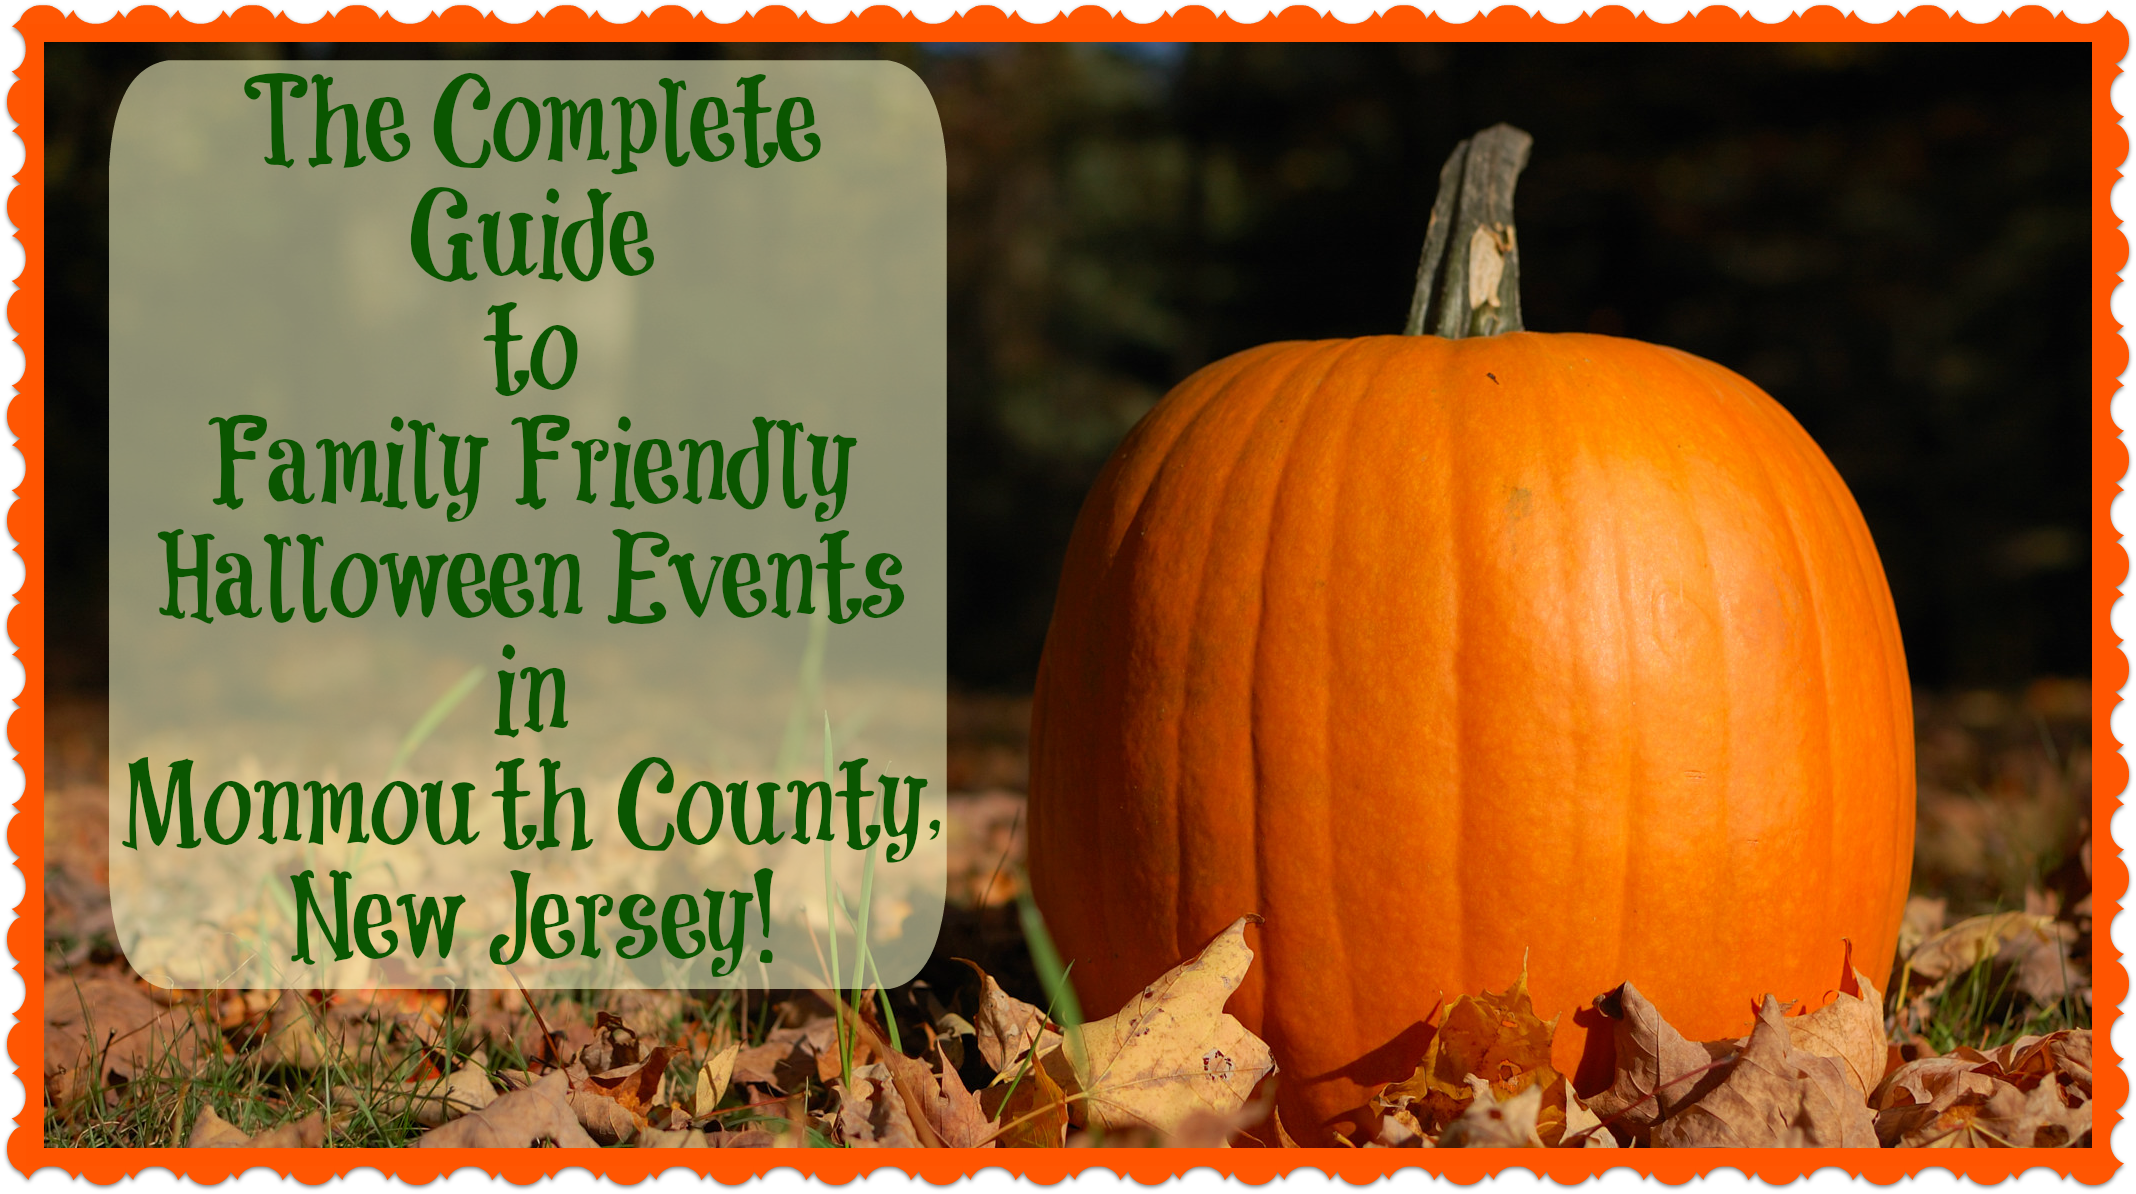 Monmouth County Halloween Events